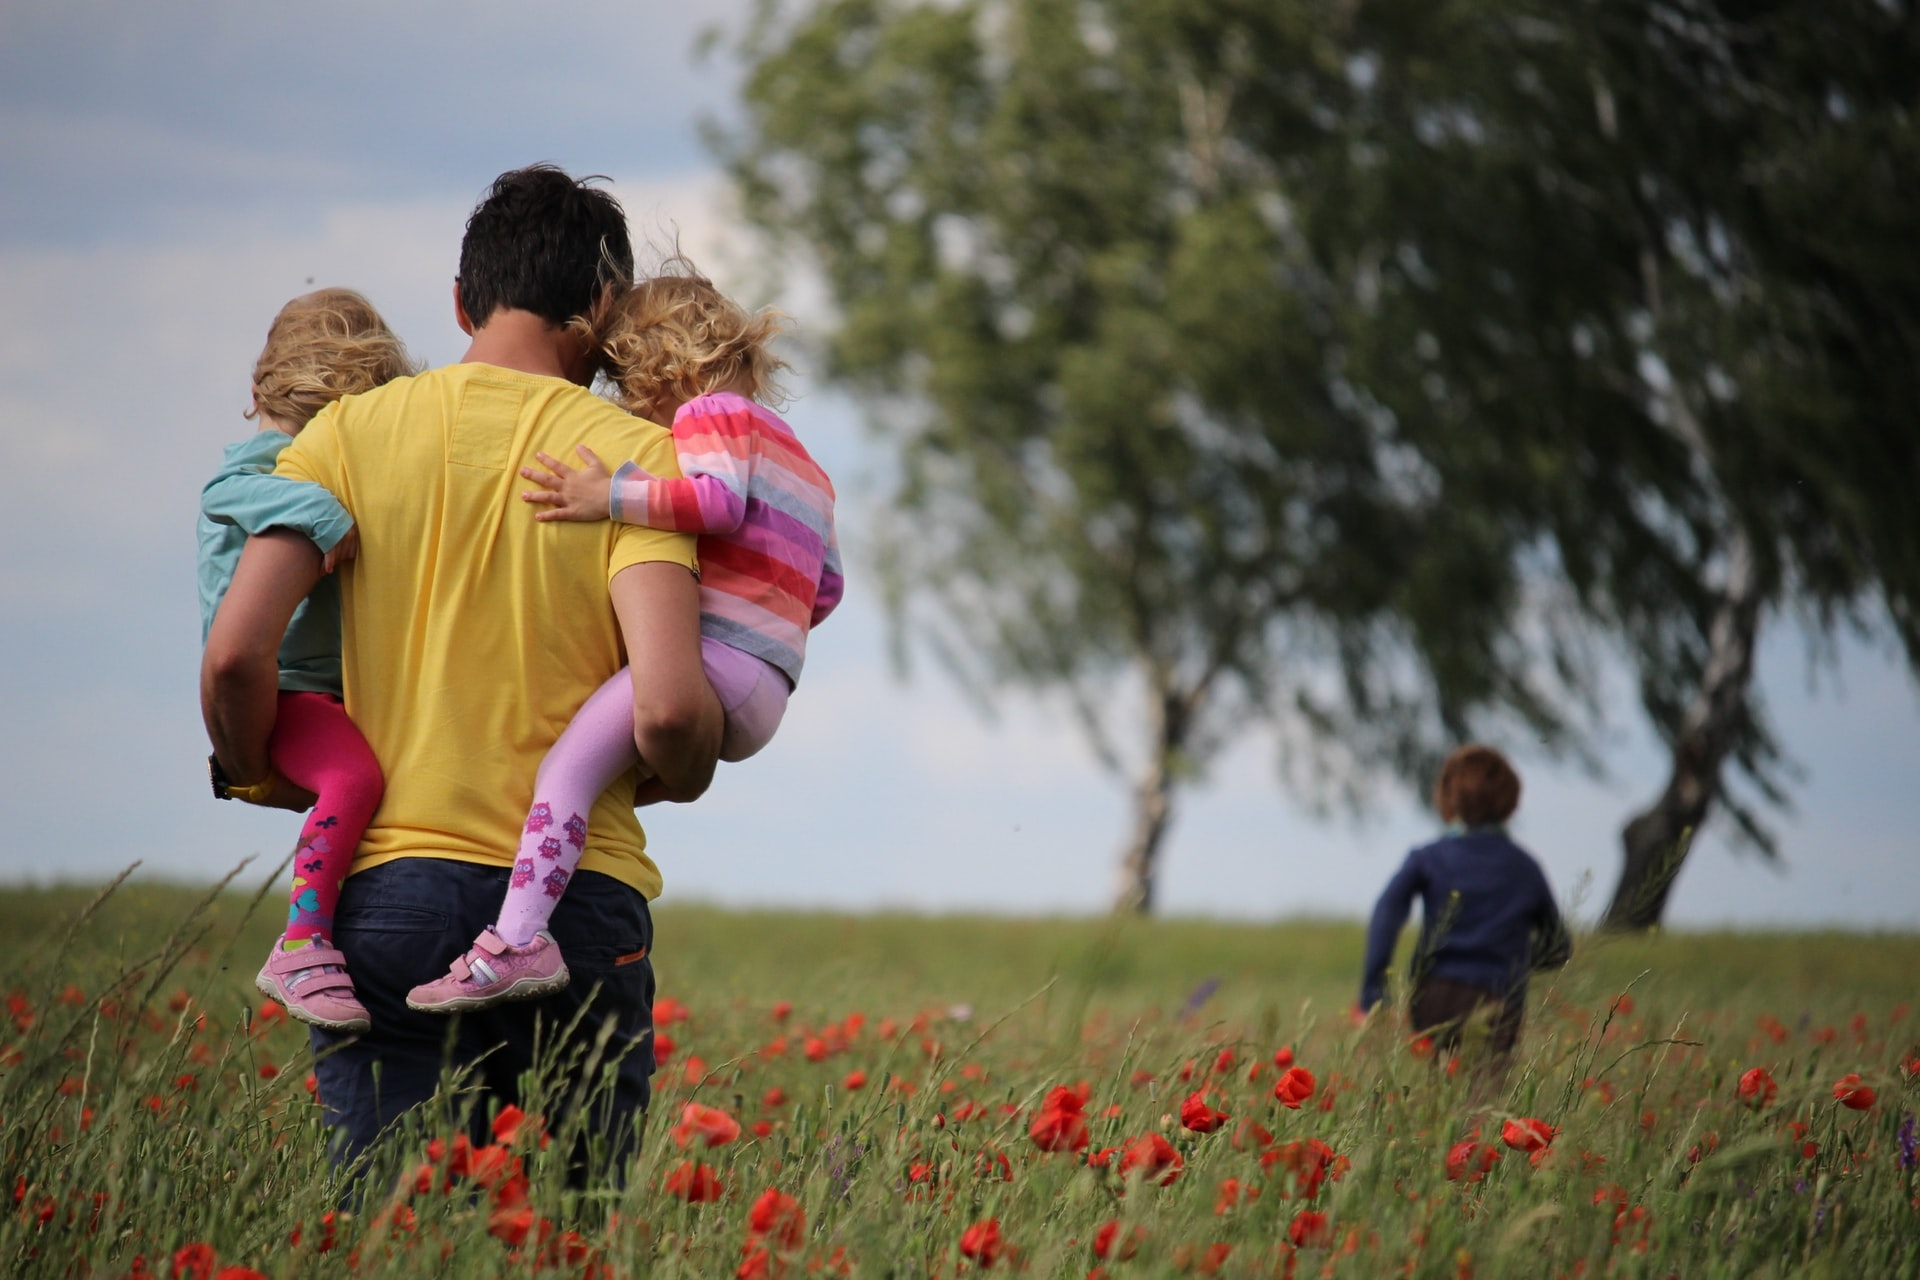 A man walking through a field of flowers holding two children